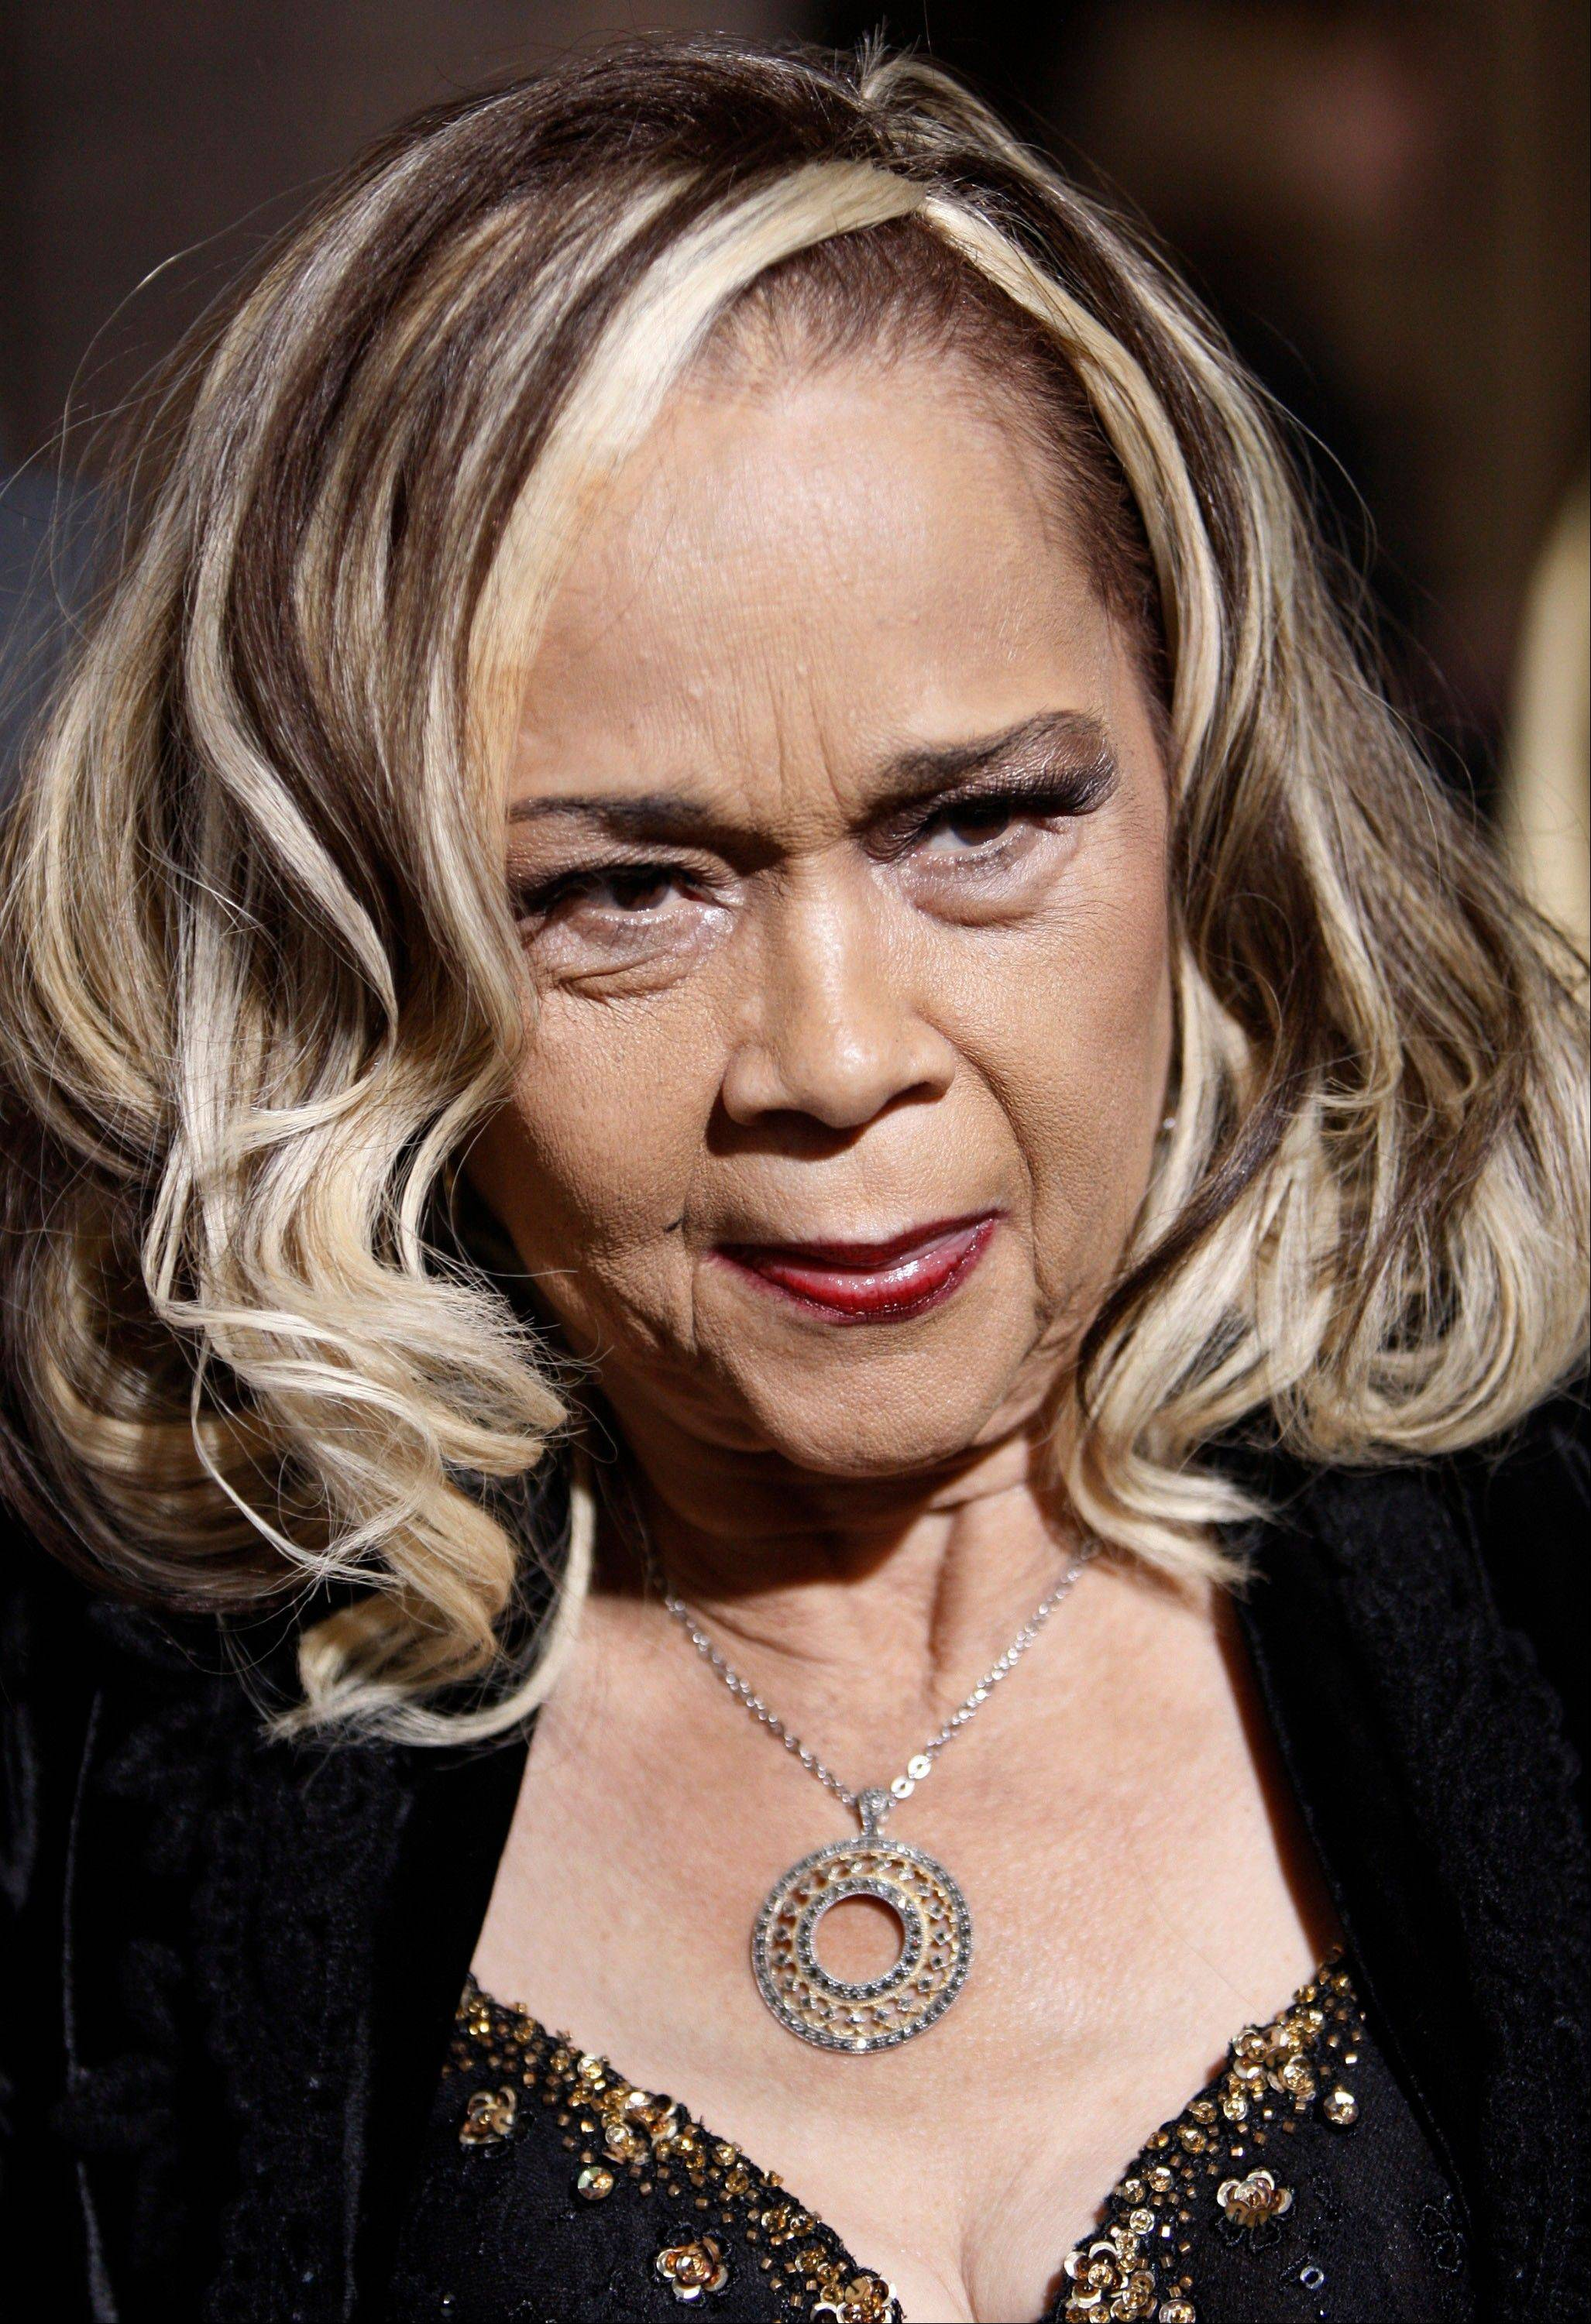 "Etta James, the feisty rhythm and blues singer whose raw, passionate vocals anchored many hits and made the yearning ballad ""At Last"" an enduring anthem for weddings, commercials and even President Barack Obama, died Jan. 20. She was 73."